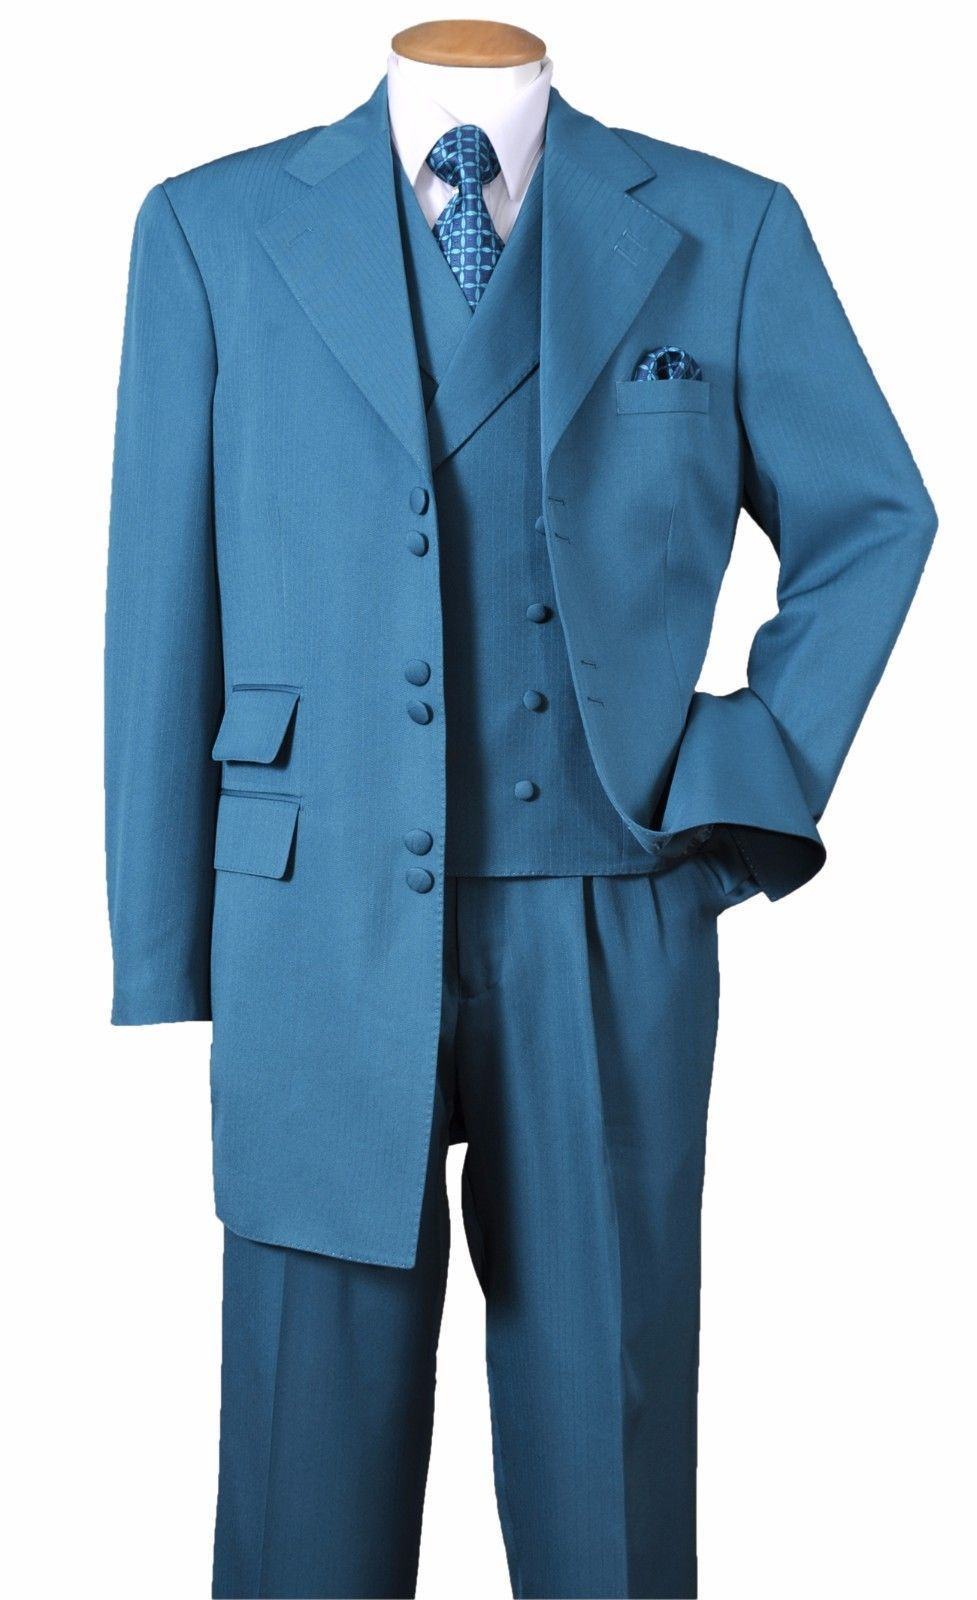 Milano Moda Suit 2917V-Turquoise - Church Suits For Less